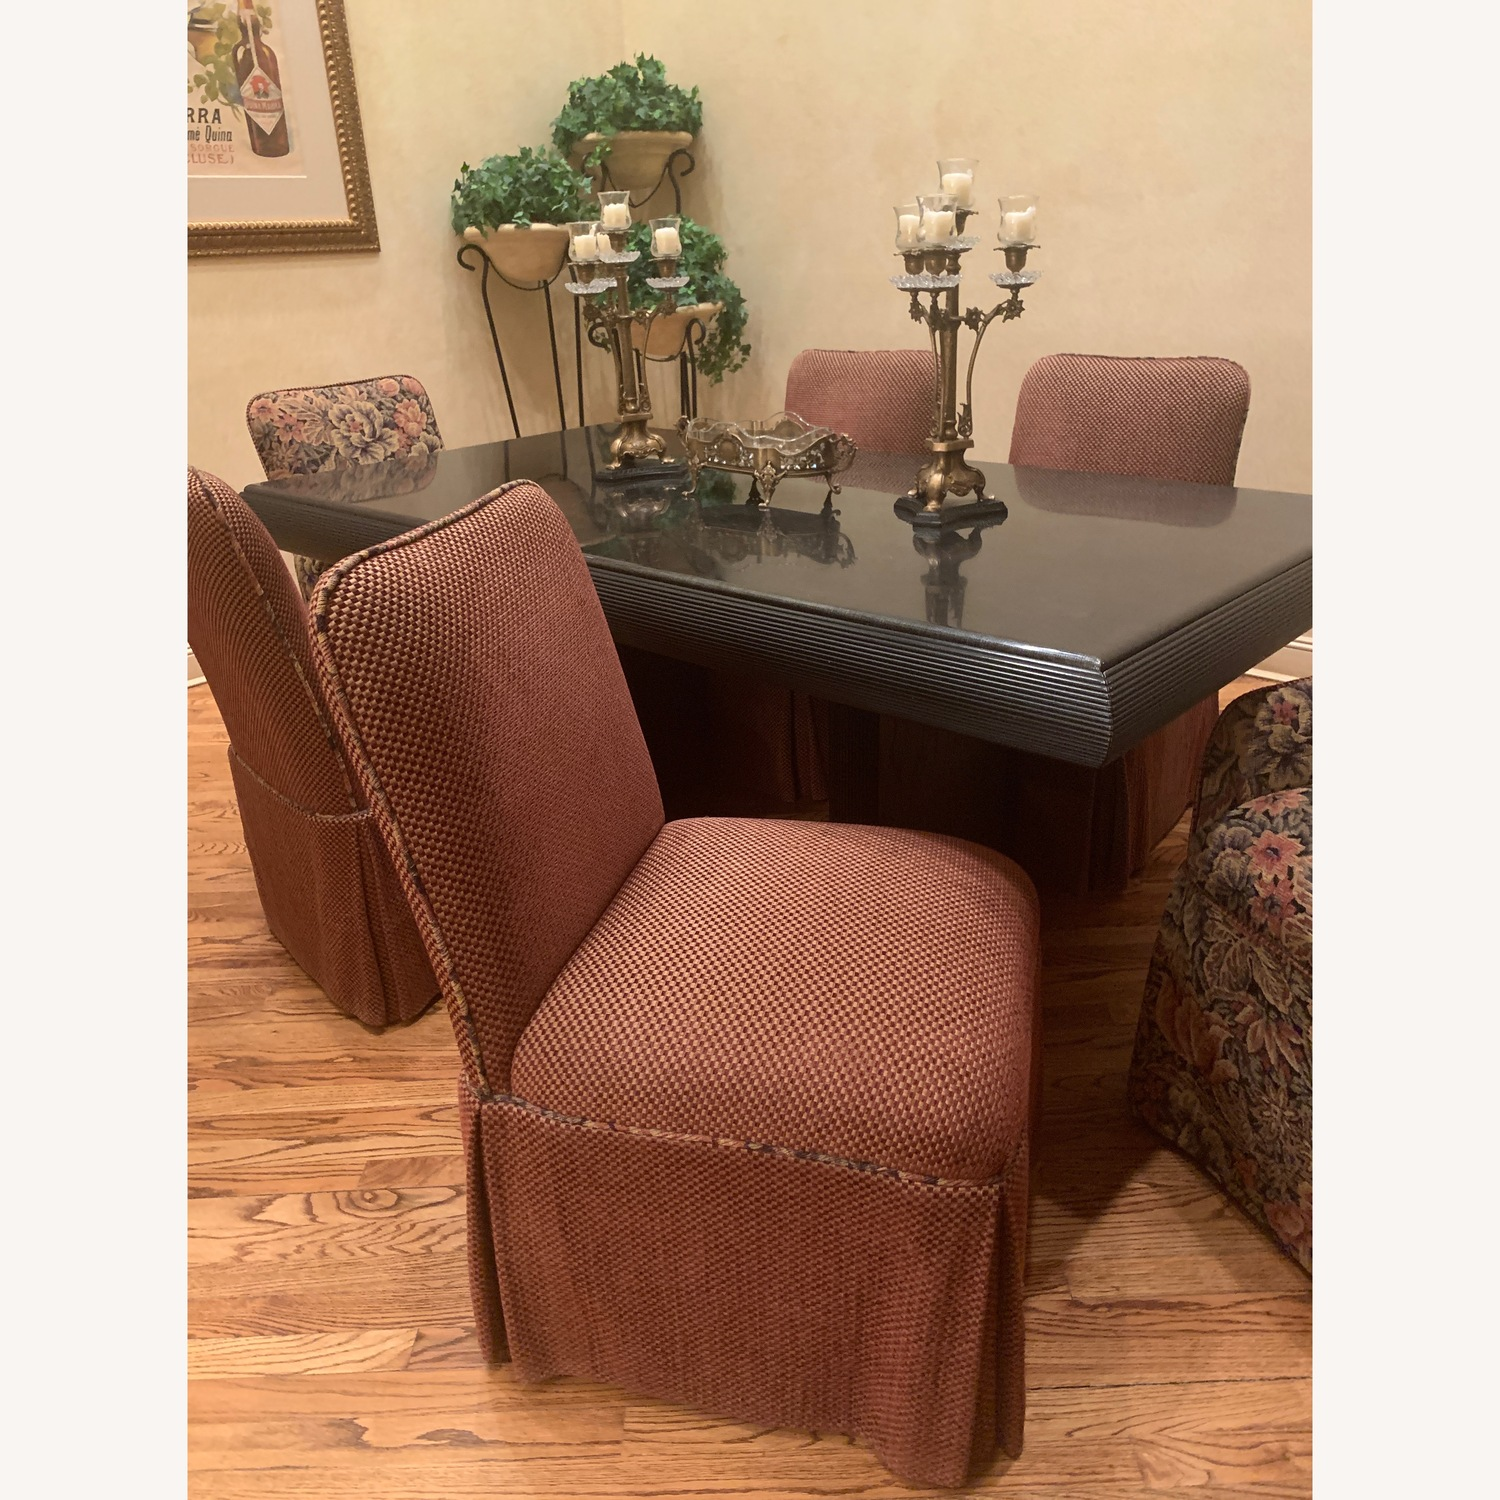 6 upholstered dining chairs - image-2